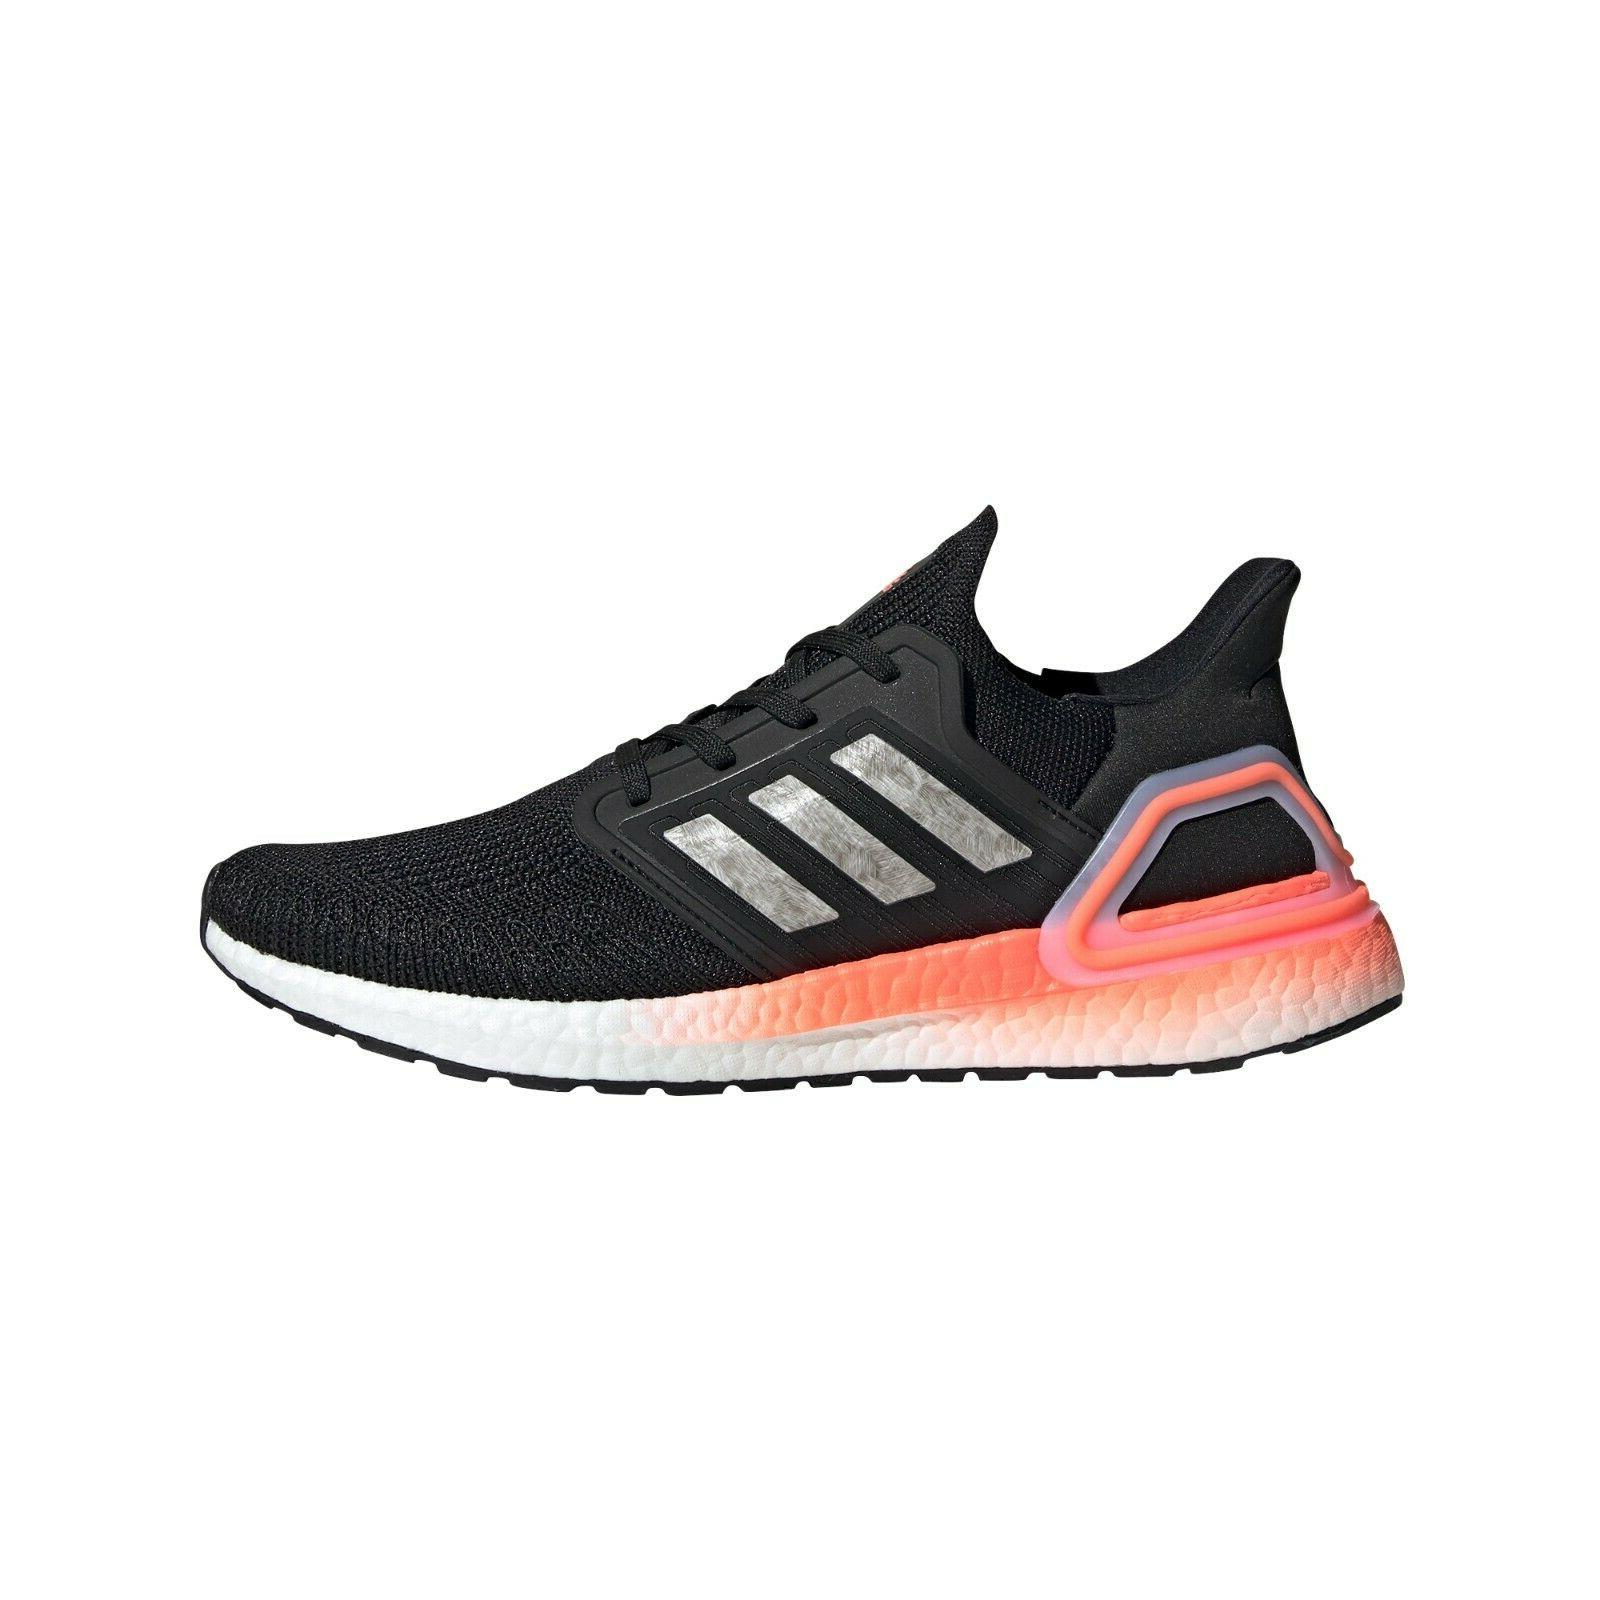 ultraboost 20 mens running shoes athletic casual